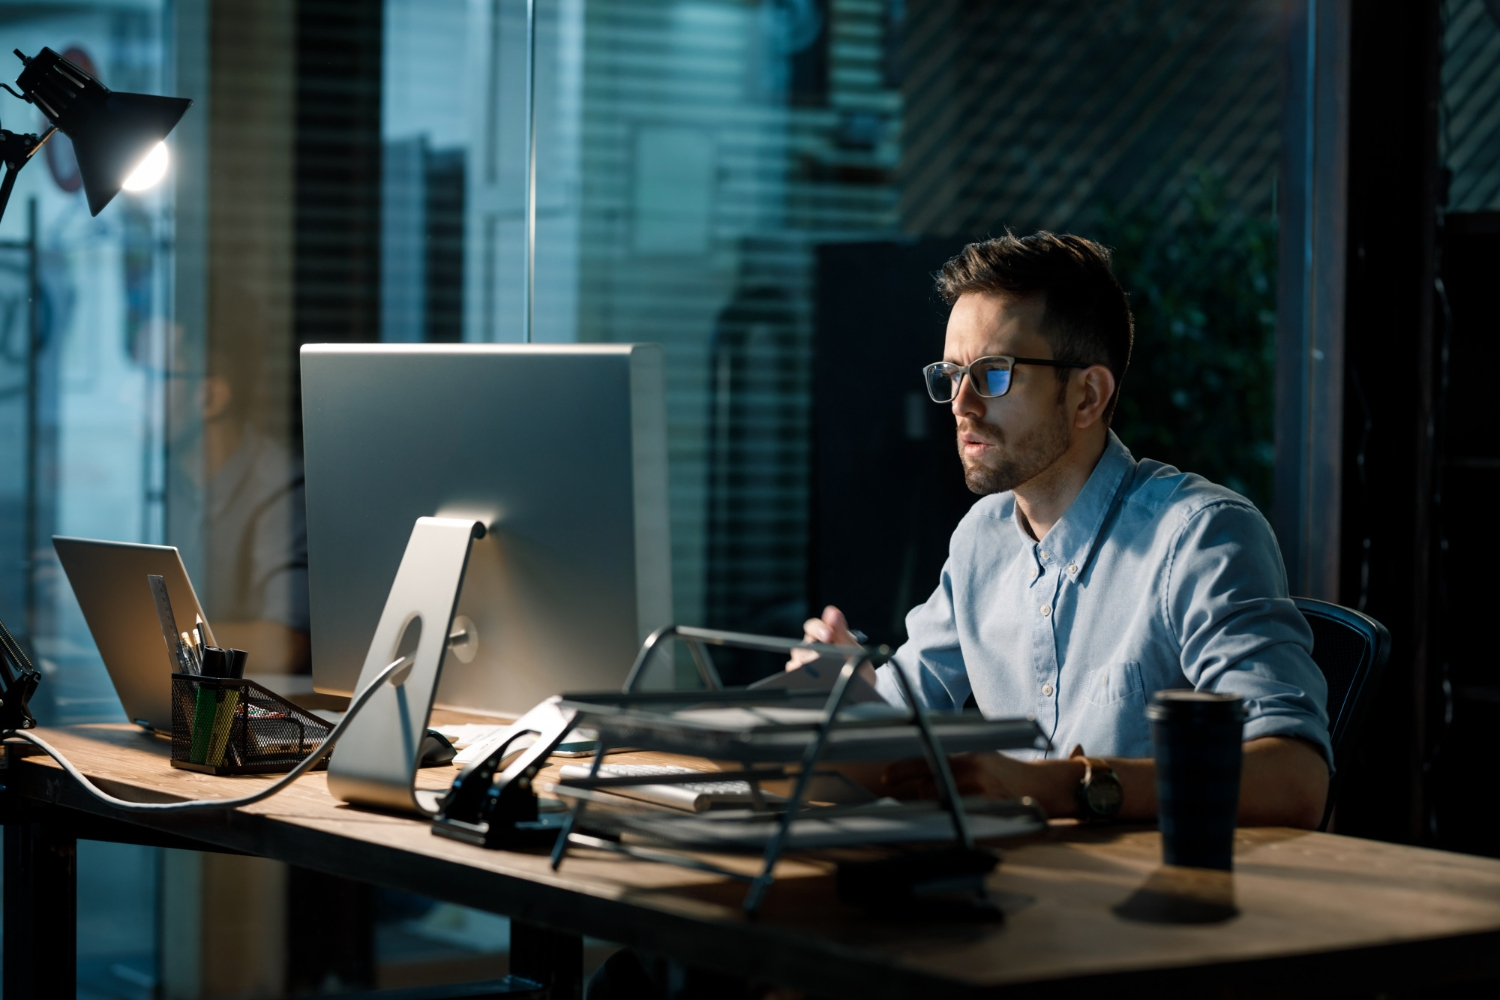 Focusing young worker late office